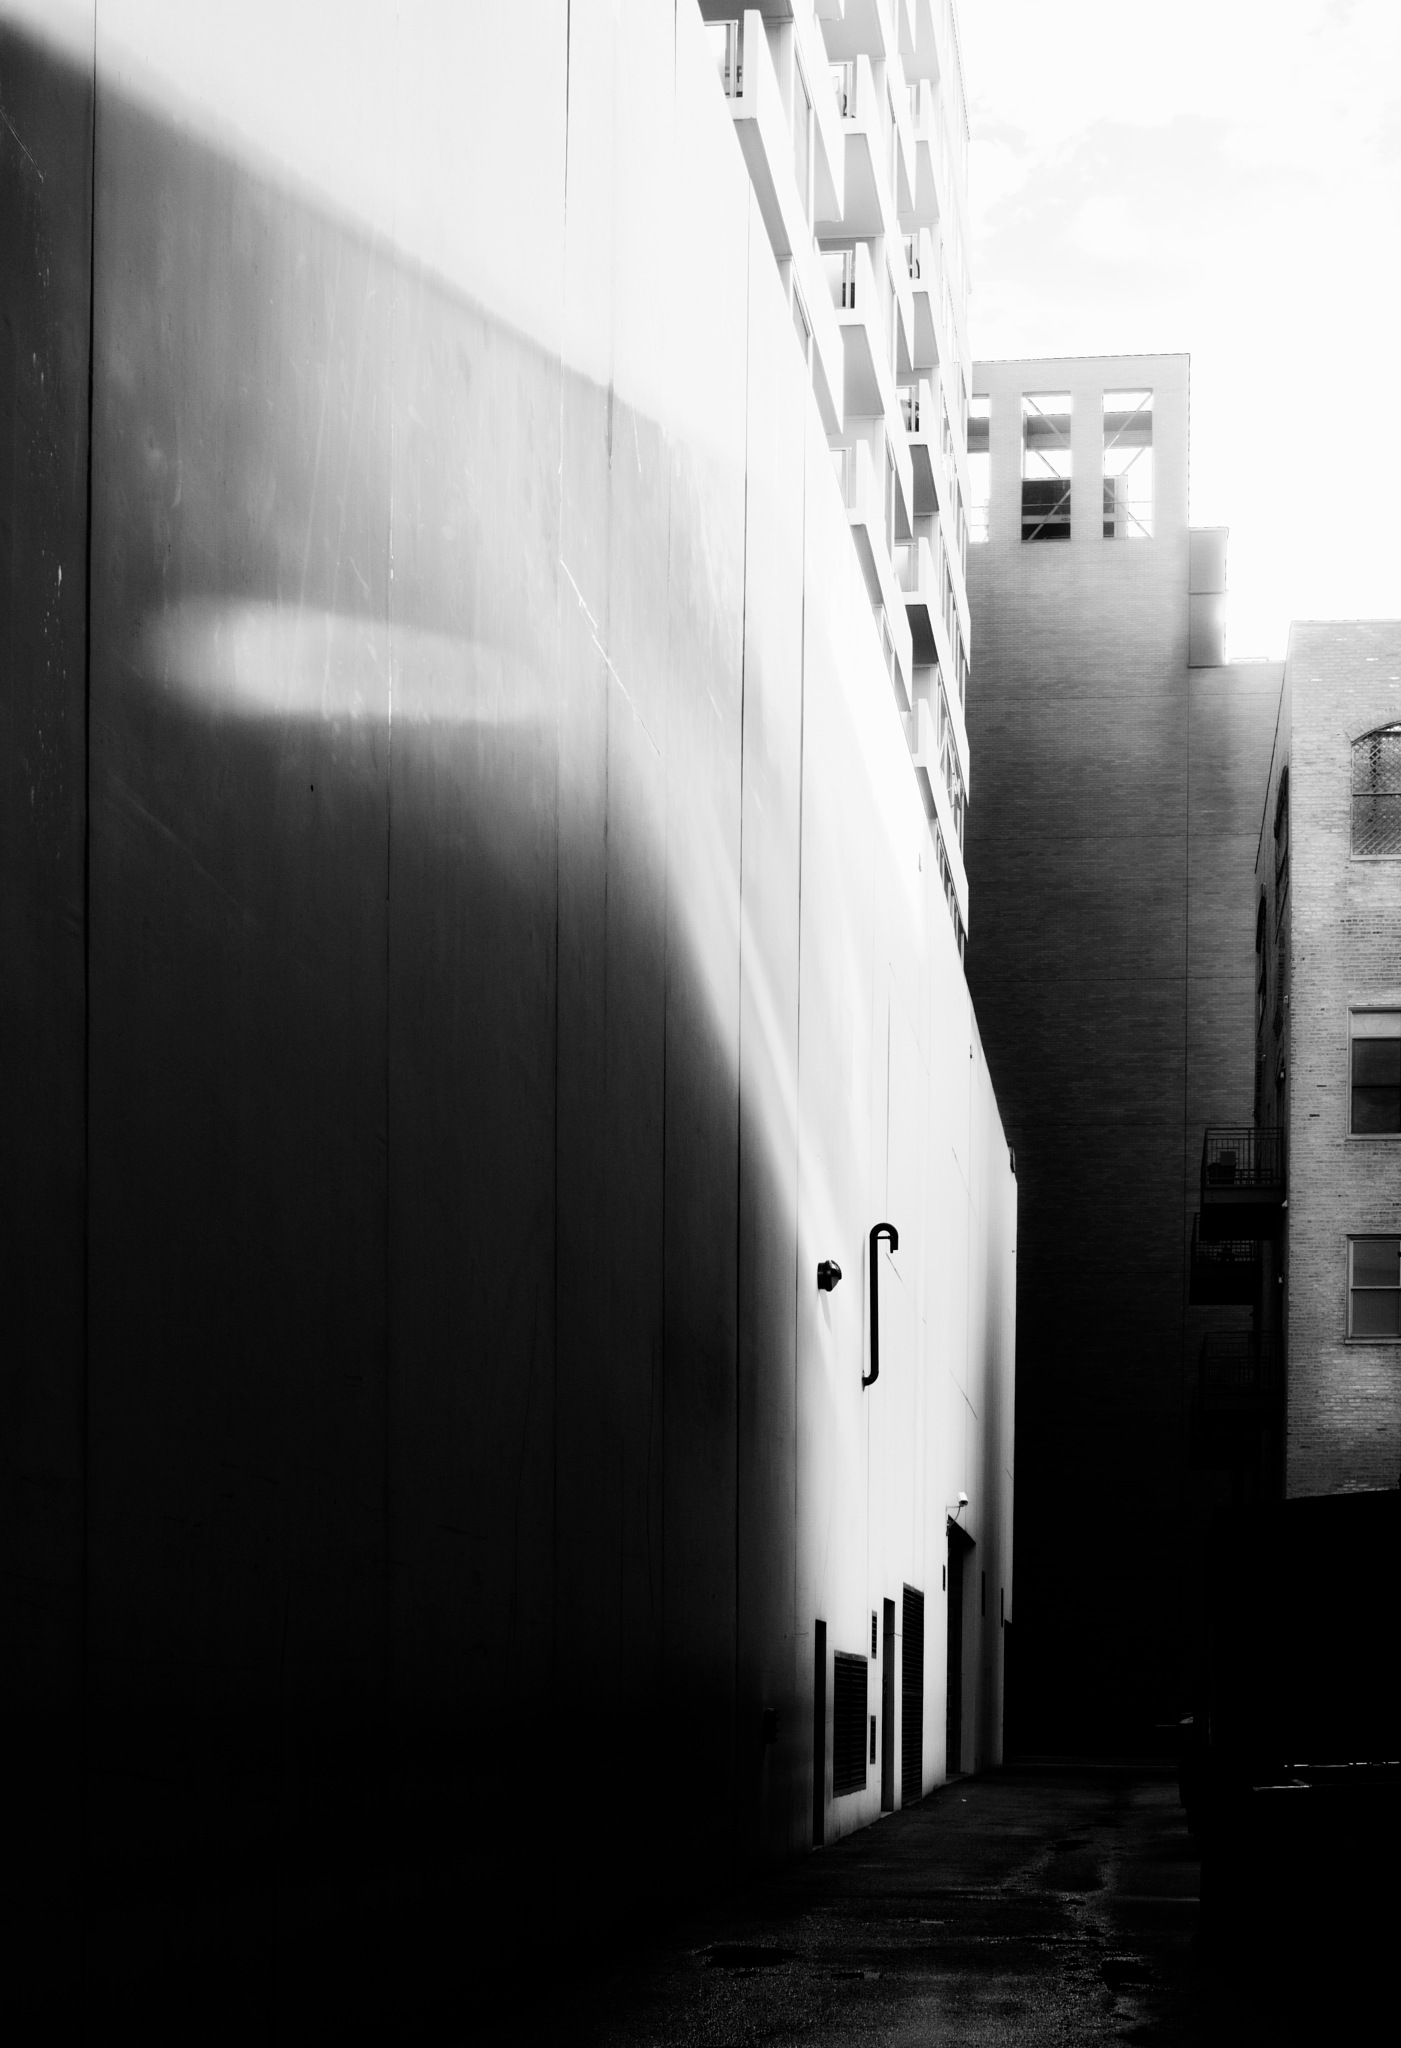 ANOTHER WET ALLEY by David DeBord